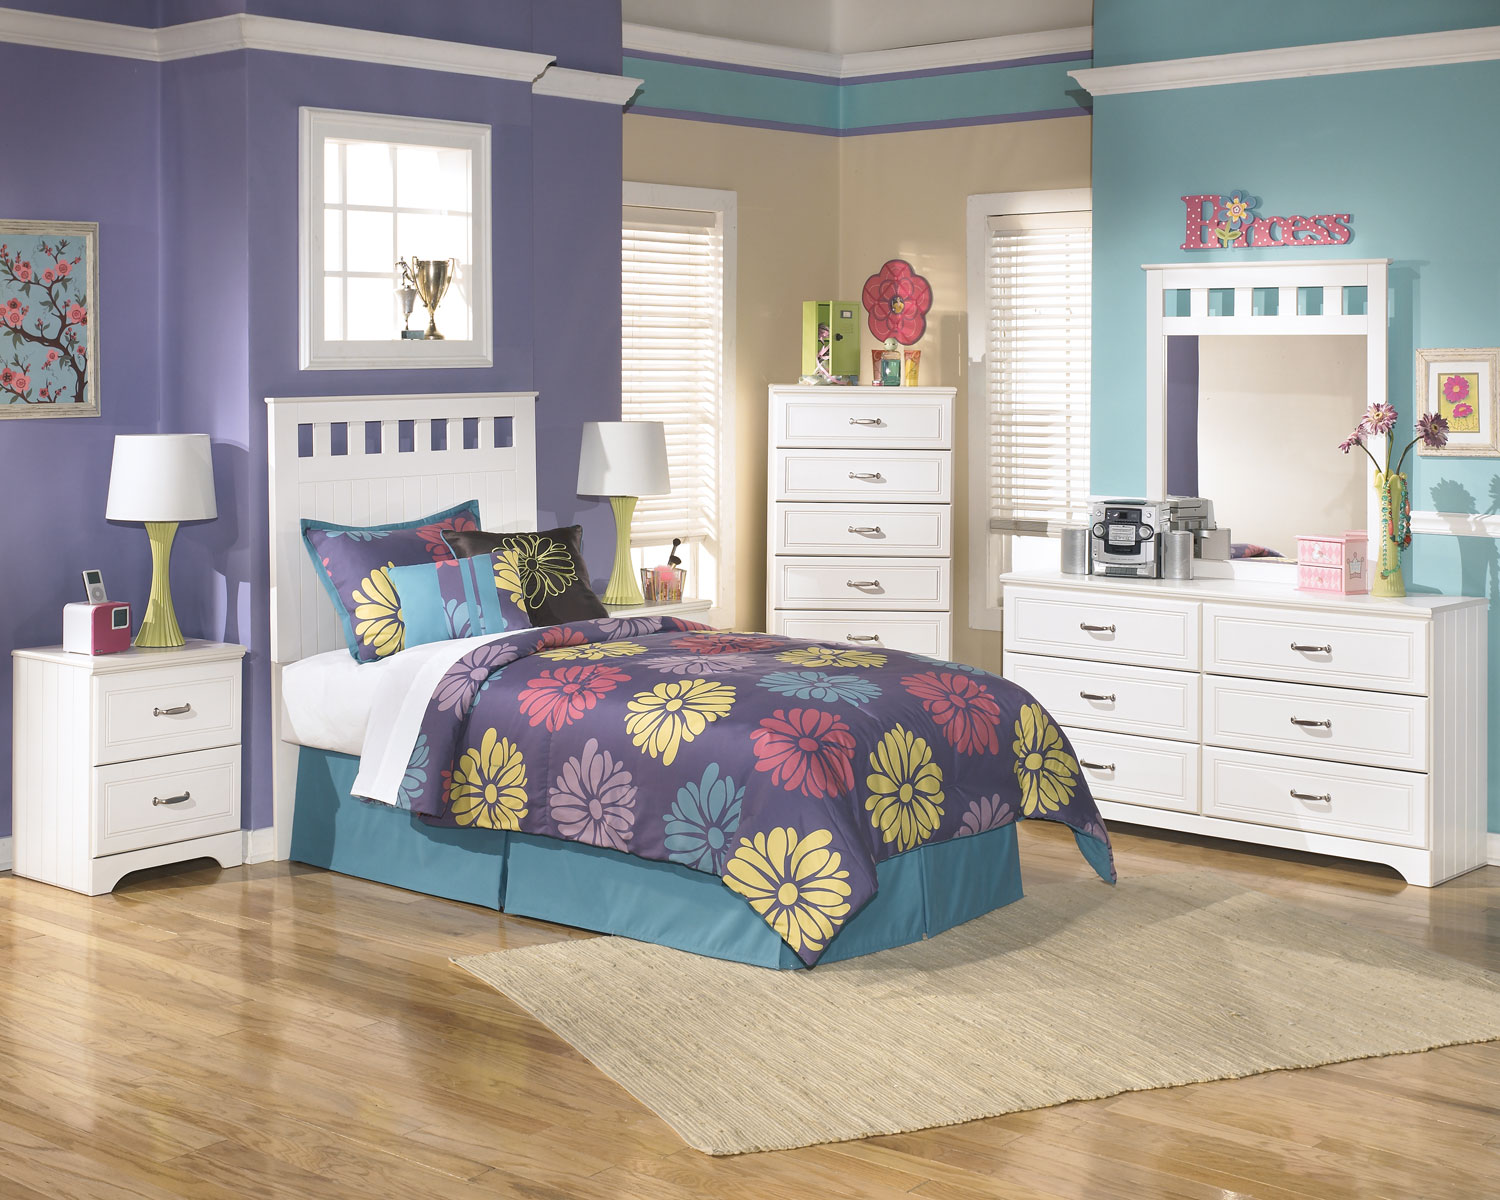 Kids Furniture - Lulu 6-Piece Full Panel Headboard Package